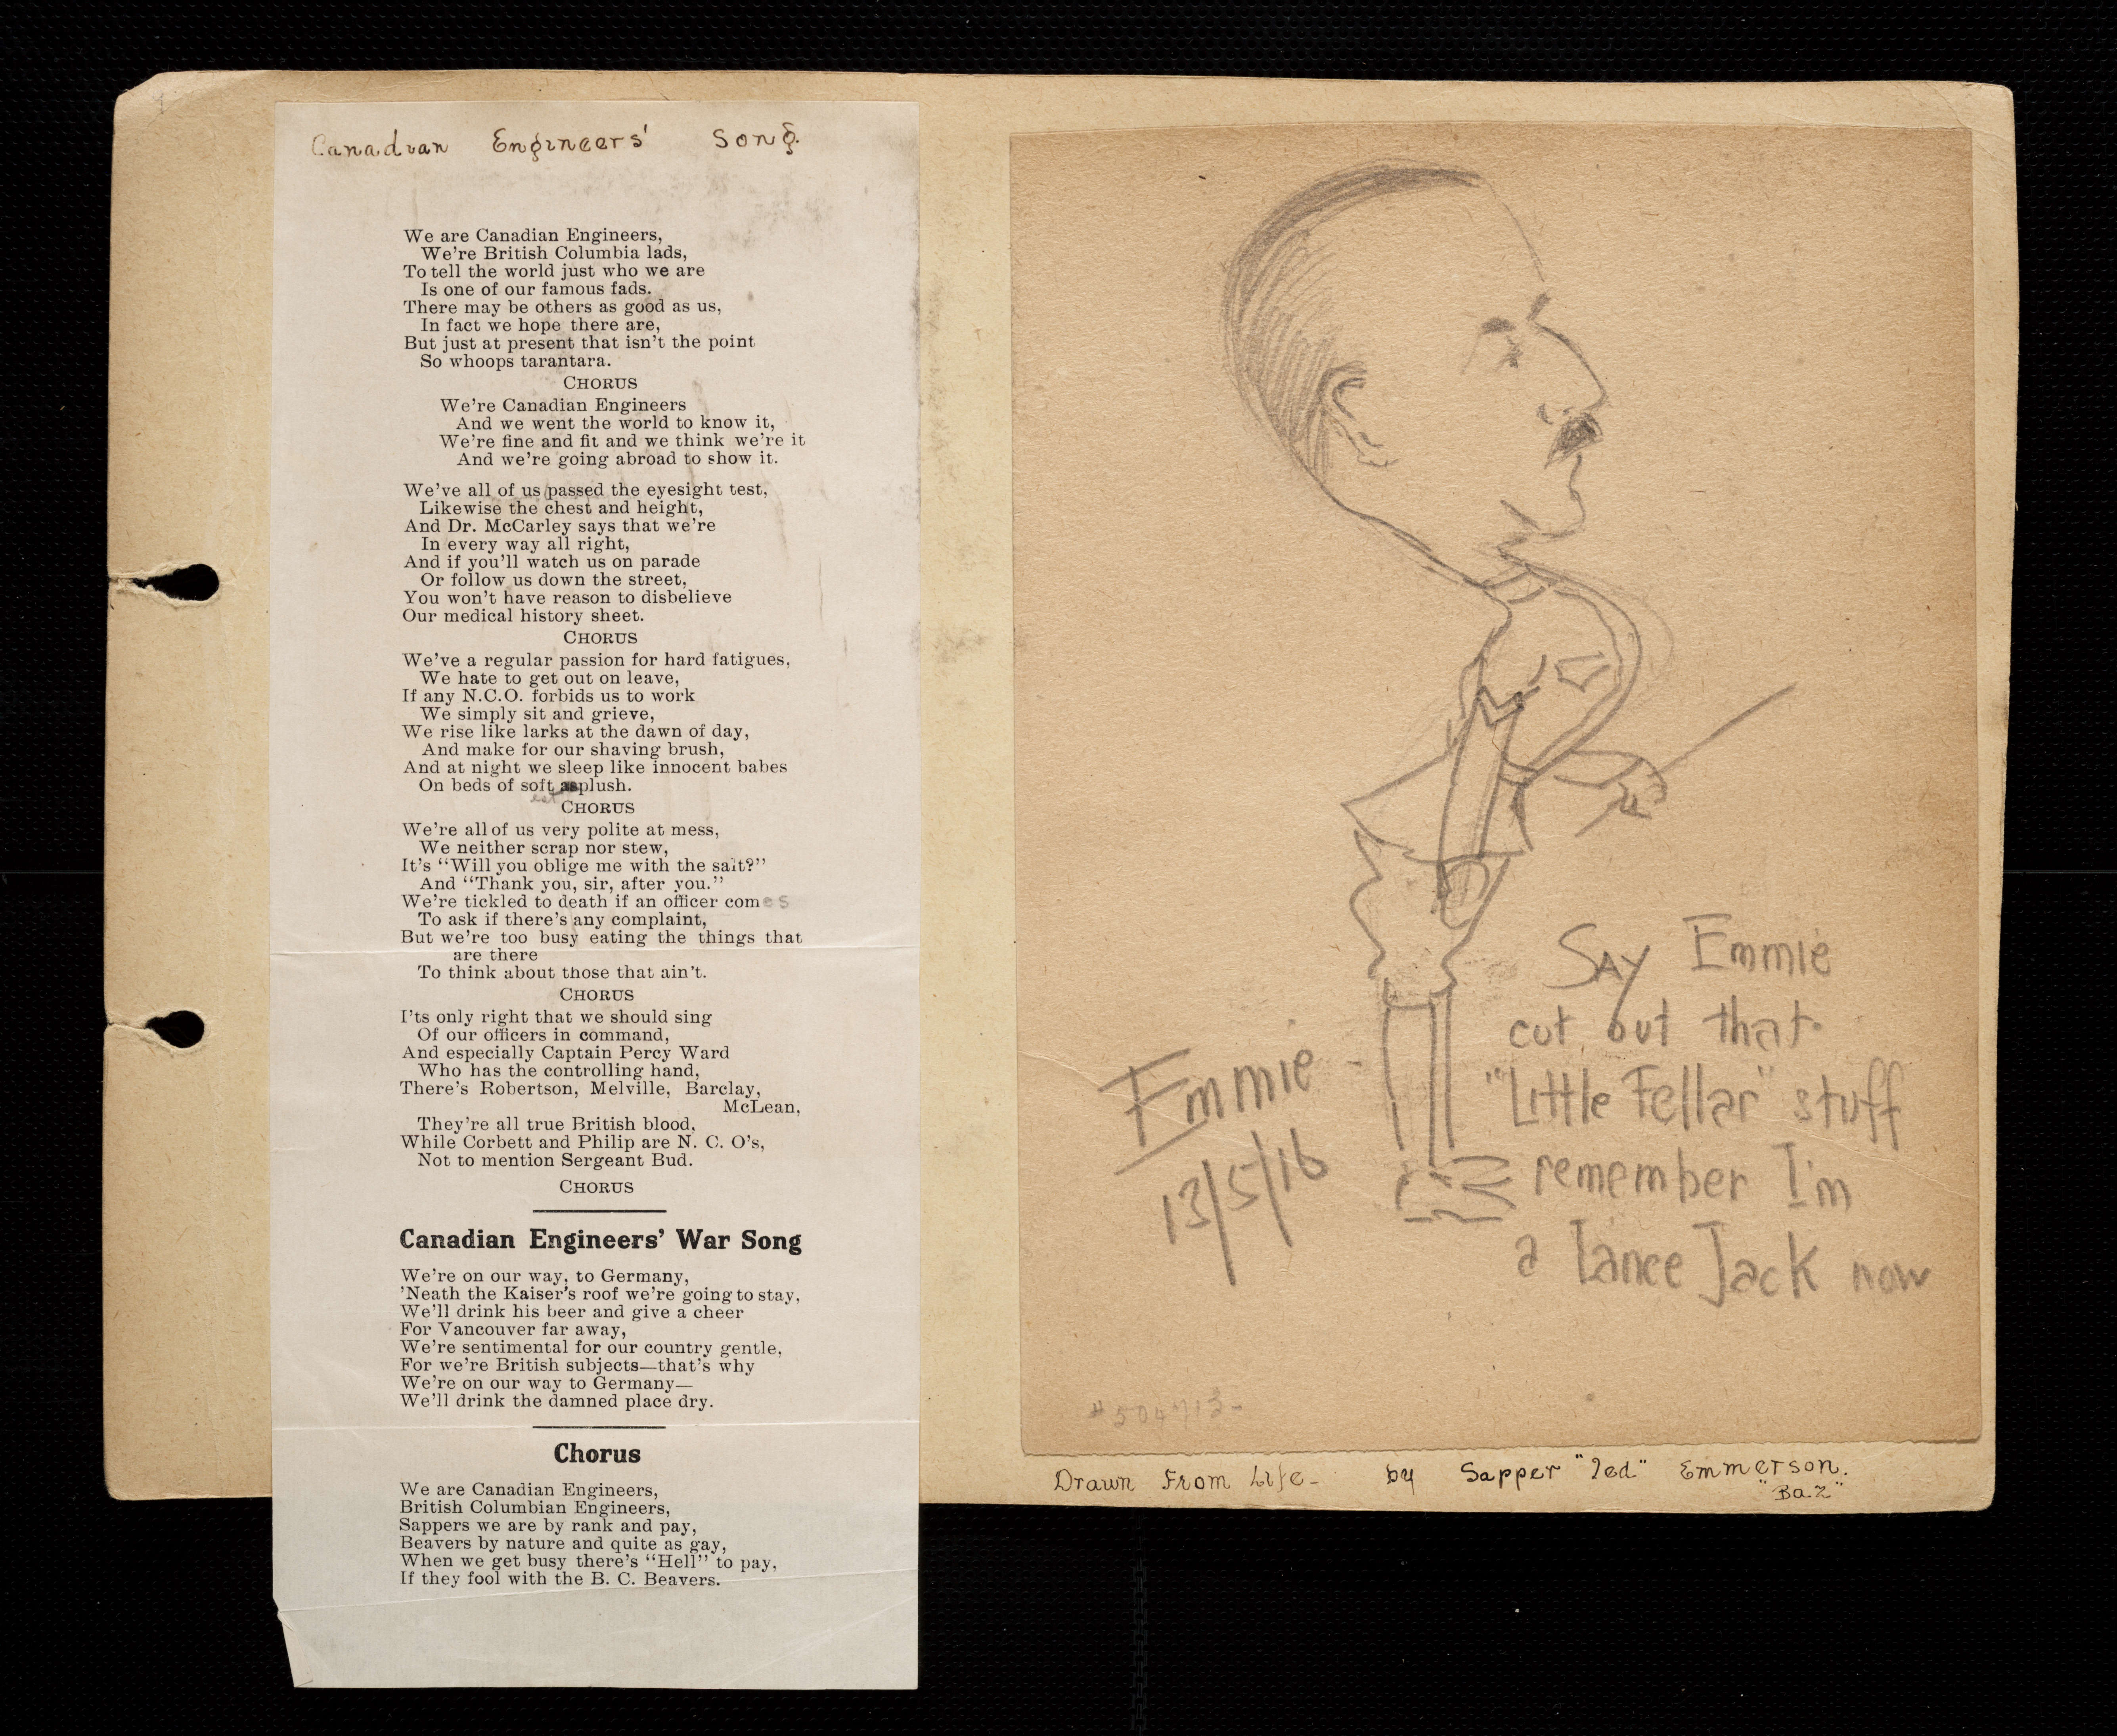 Florence westman first world war scrapbook victoria to vimy uvic description 2nd image of page 9 showing unfolded page of song lyrics subjects world war 1914 1918 westman florence m world war stopboris Images